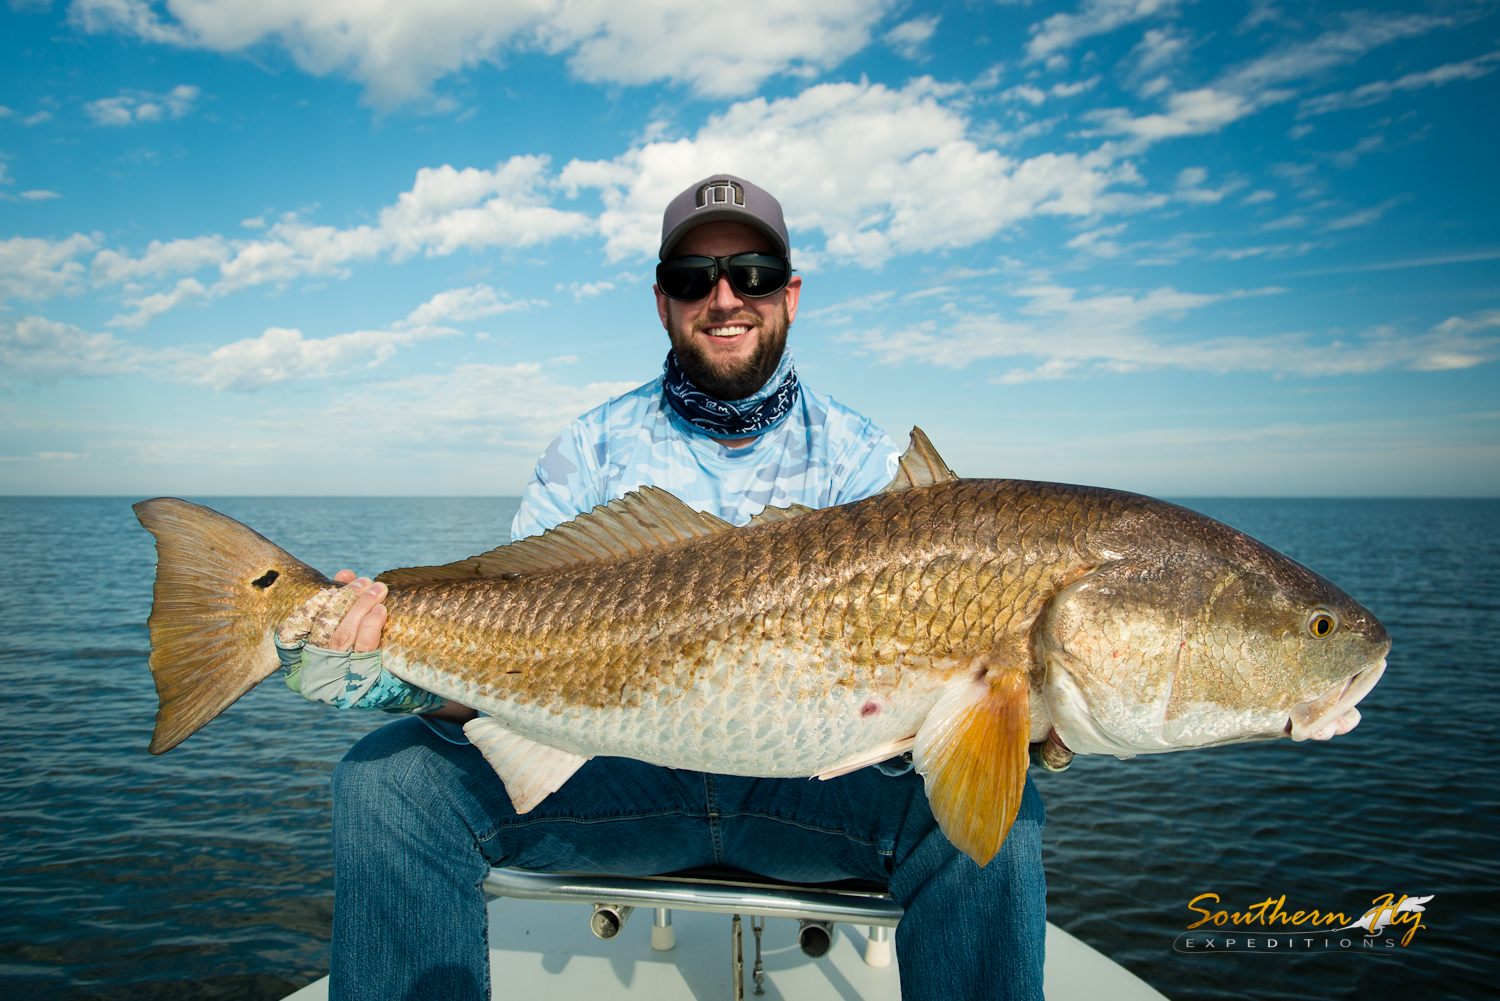 2017-02-06_SouthernFlyExpeditions_PatrickLawrence-2.jpg